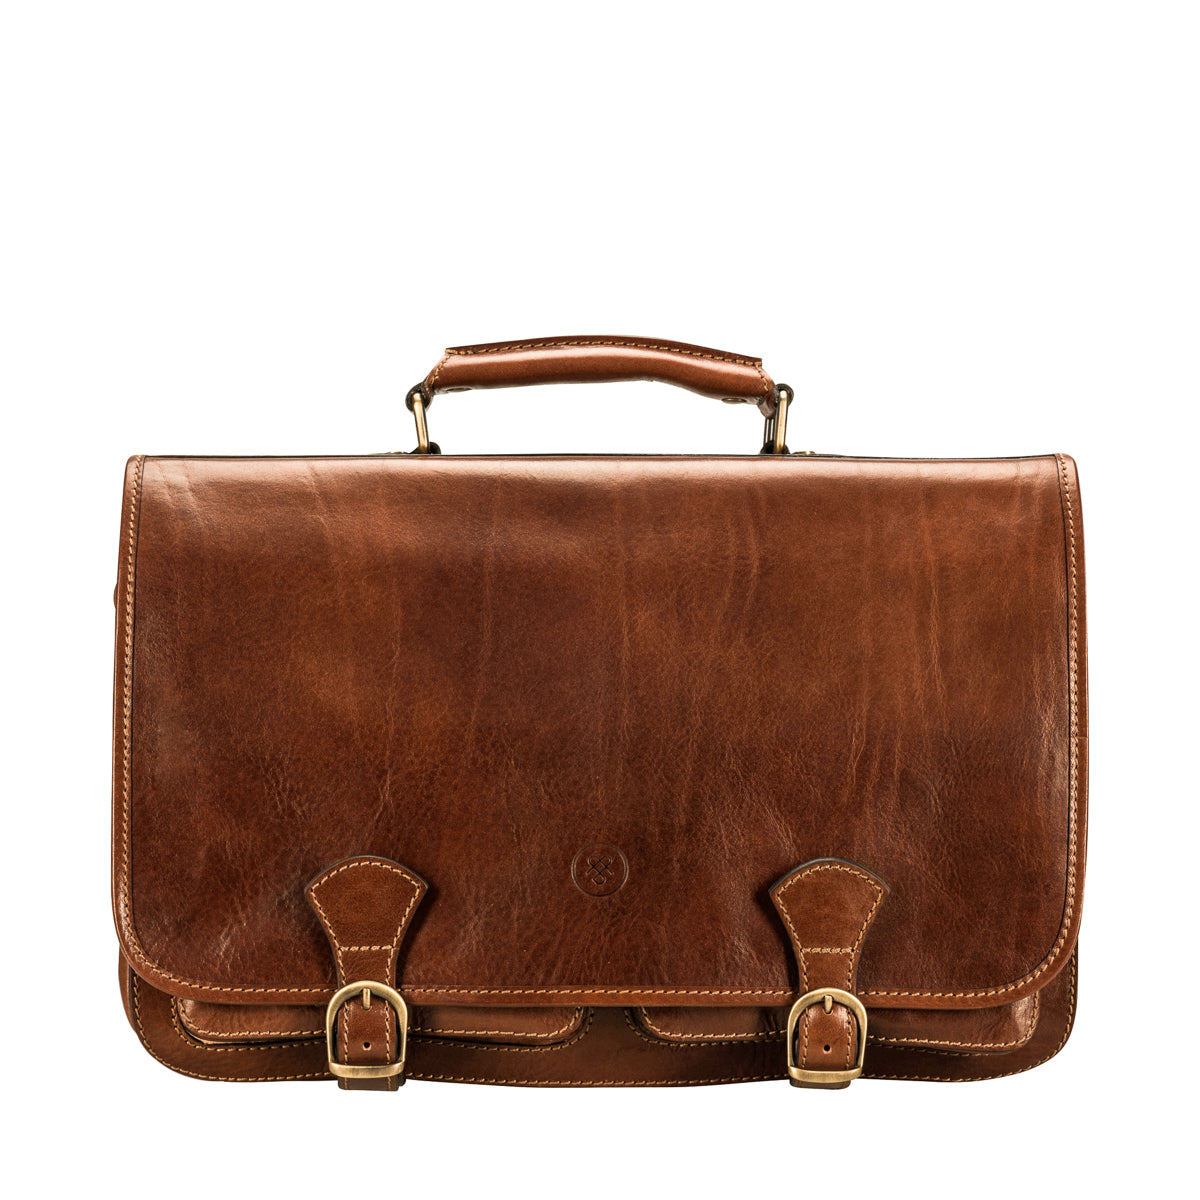 Image 1 of the 'Jesolo Tre' Chestnut Veg-Tanned Leather Satchel